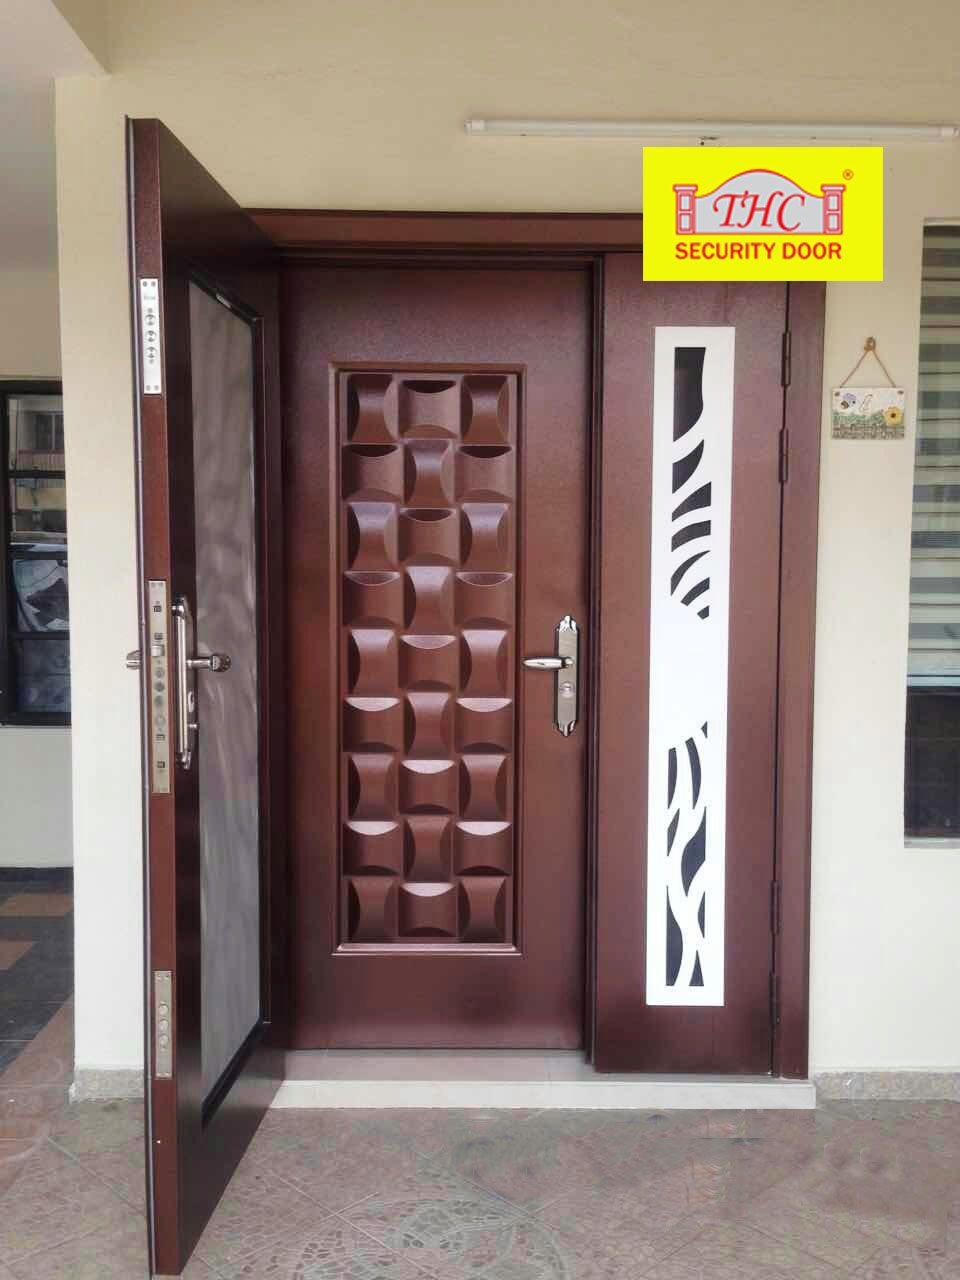 security door, safety door, metal door, main door, art